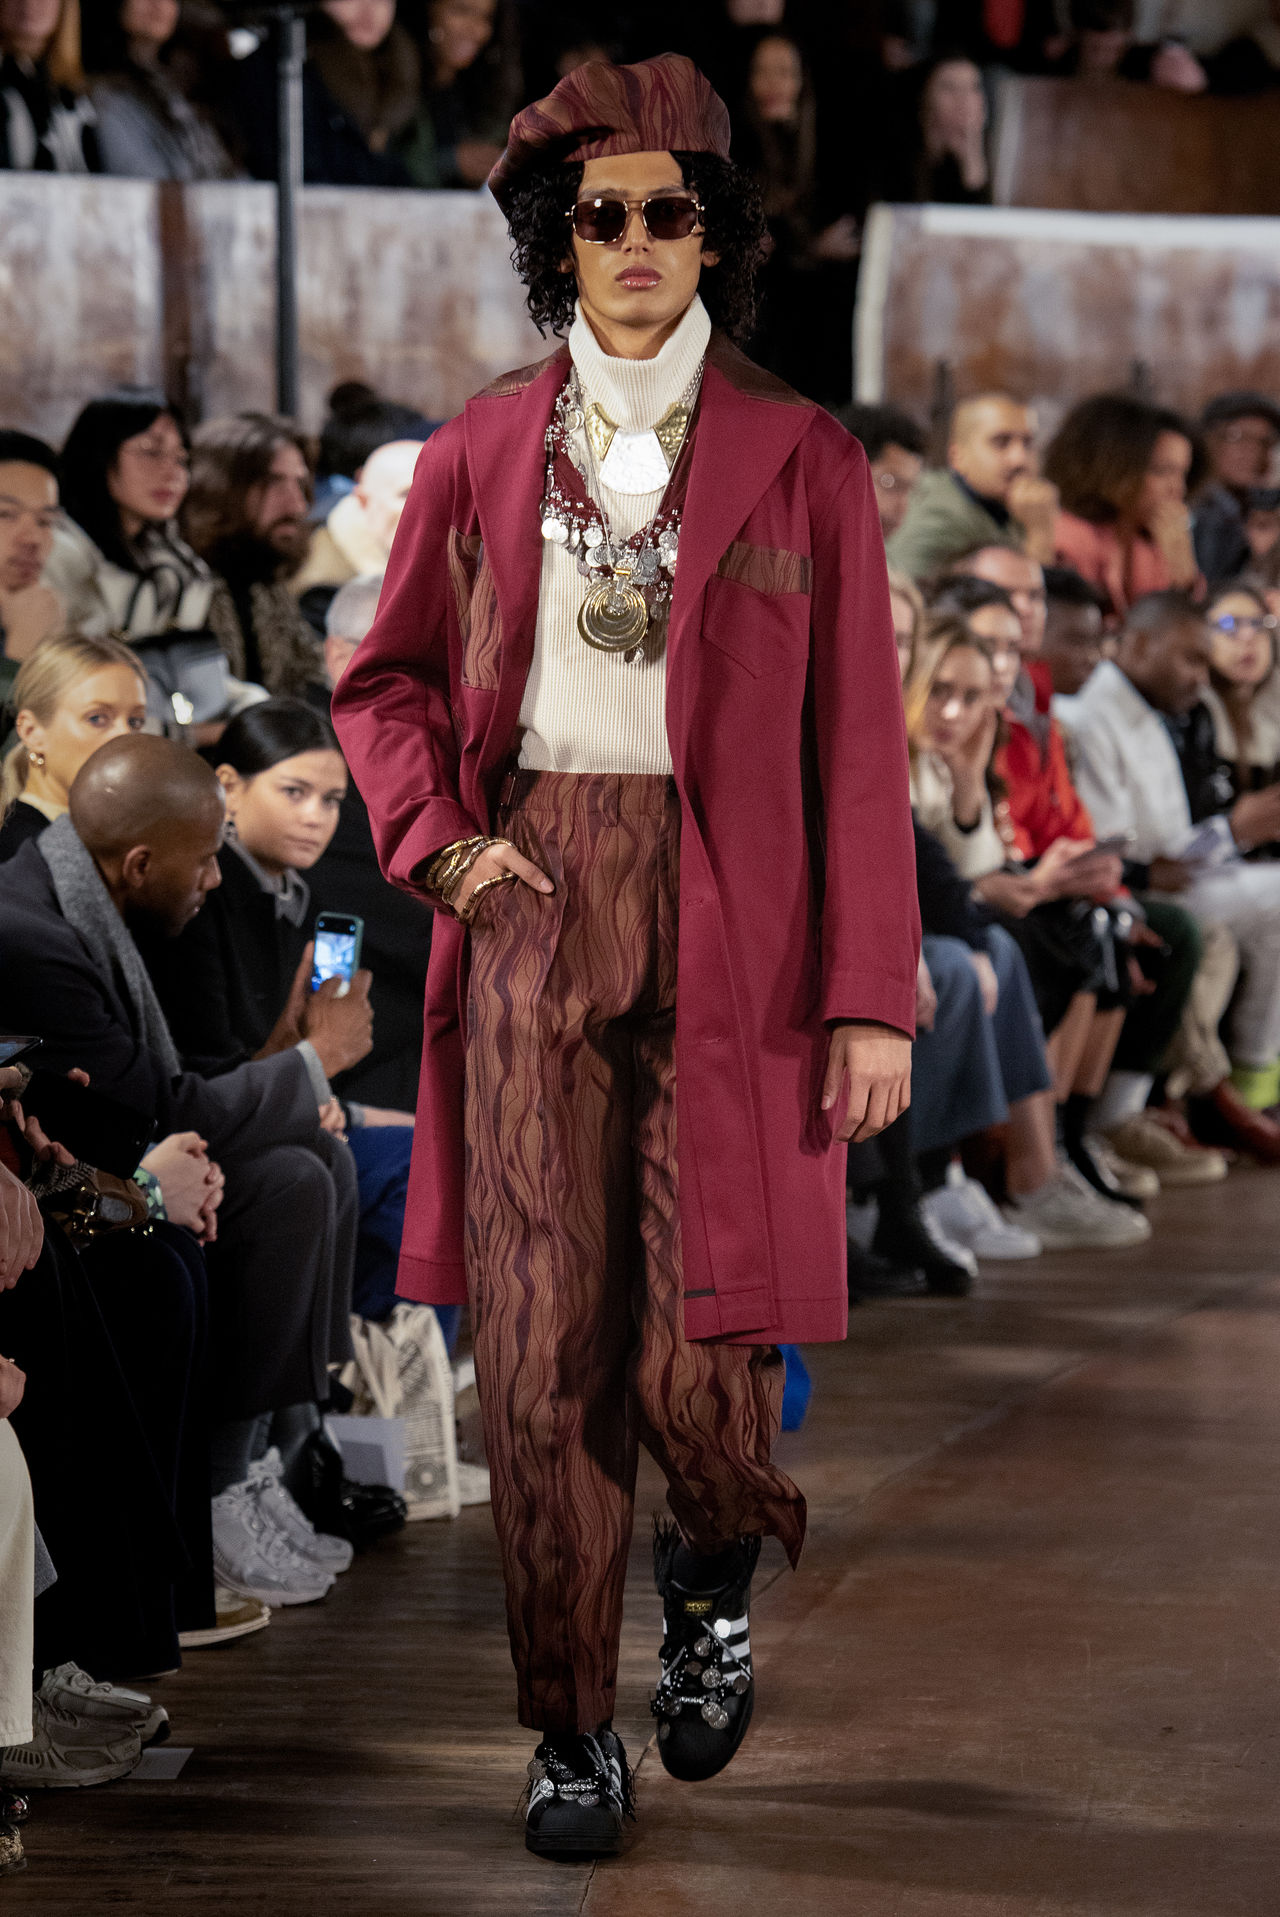 A model walking down the runway wearing Nicholas Daley's Autumn Winter 2020 collection. This look is a long maroon coat with stunning trousers in a painterly style.